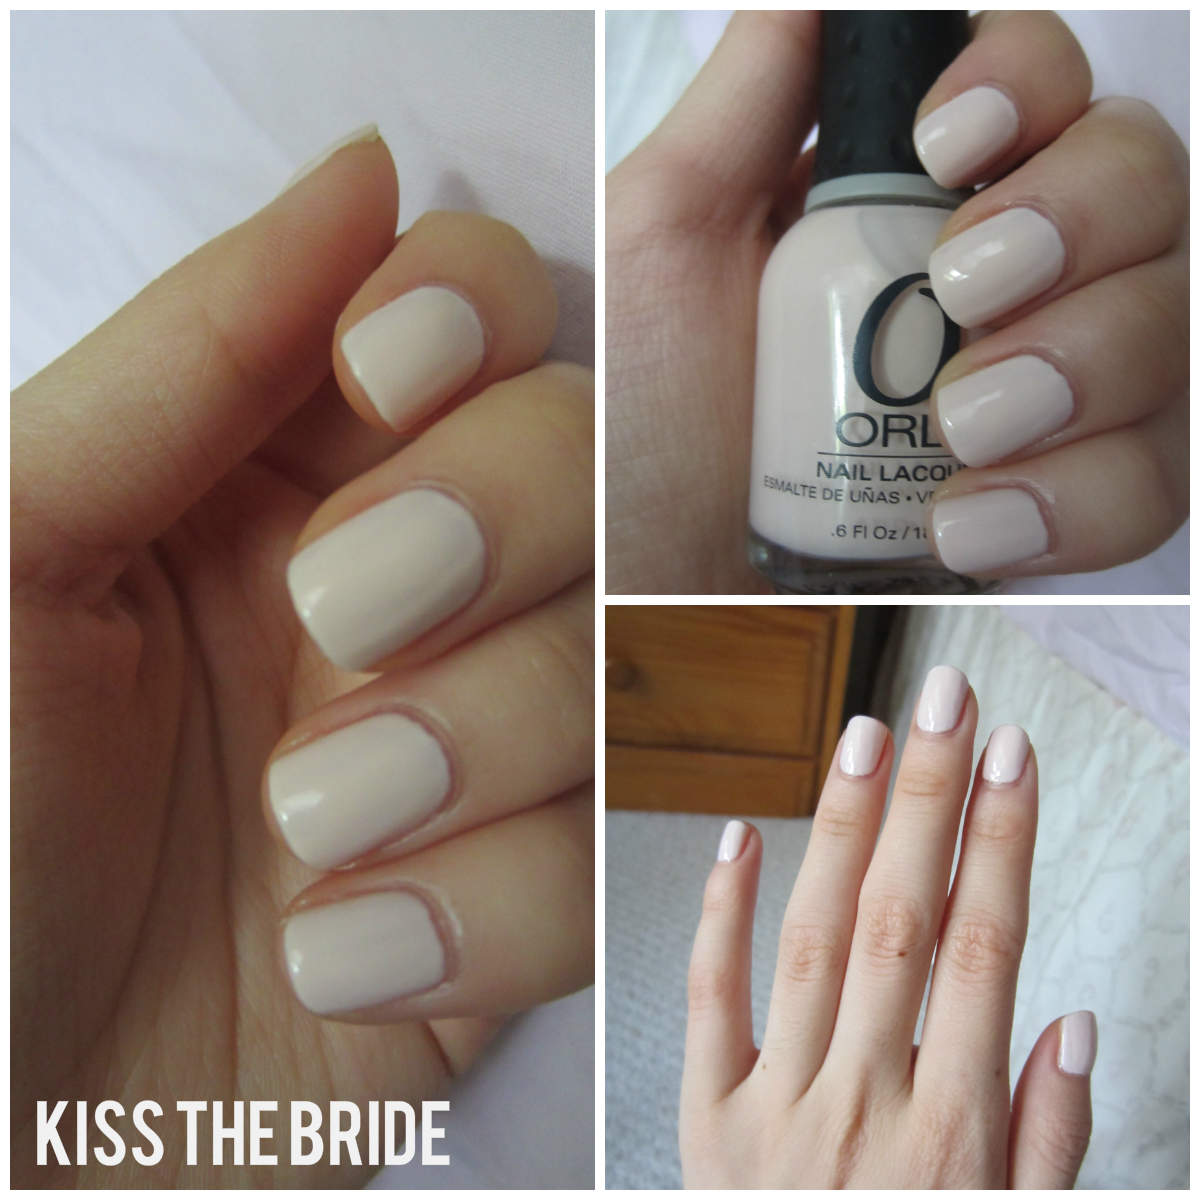 Nails Prevail: Orly Kiss the Bride